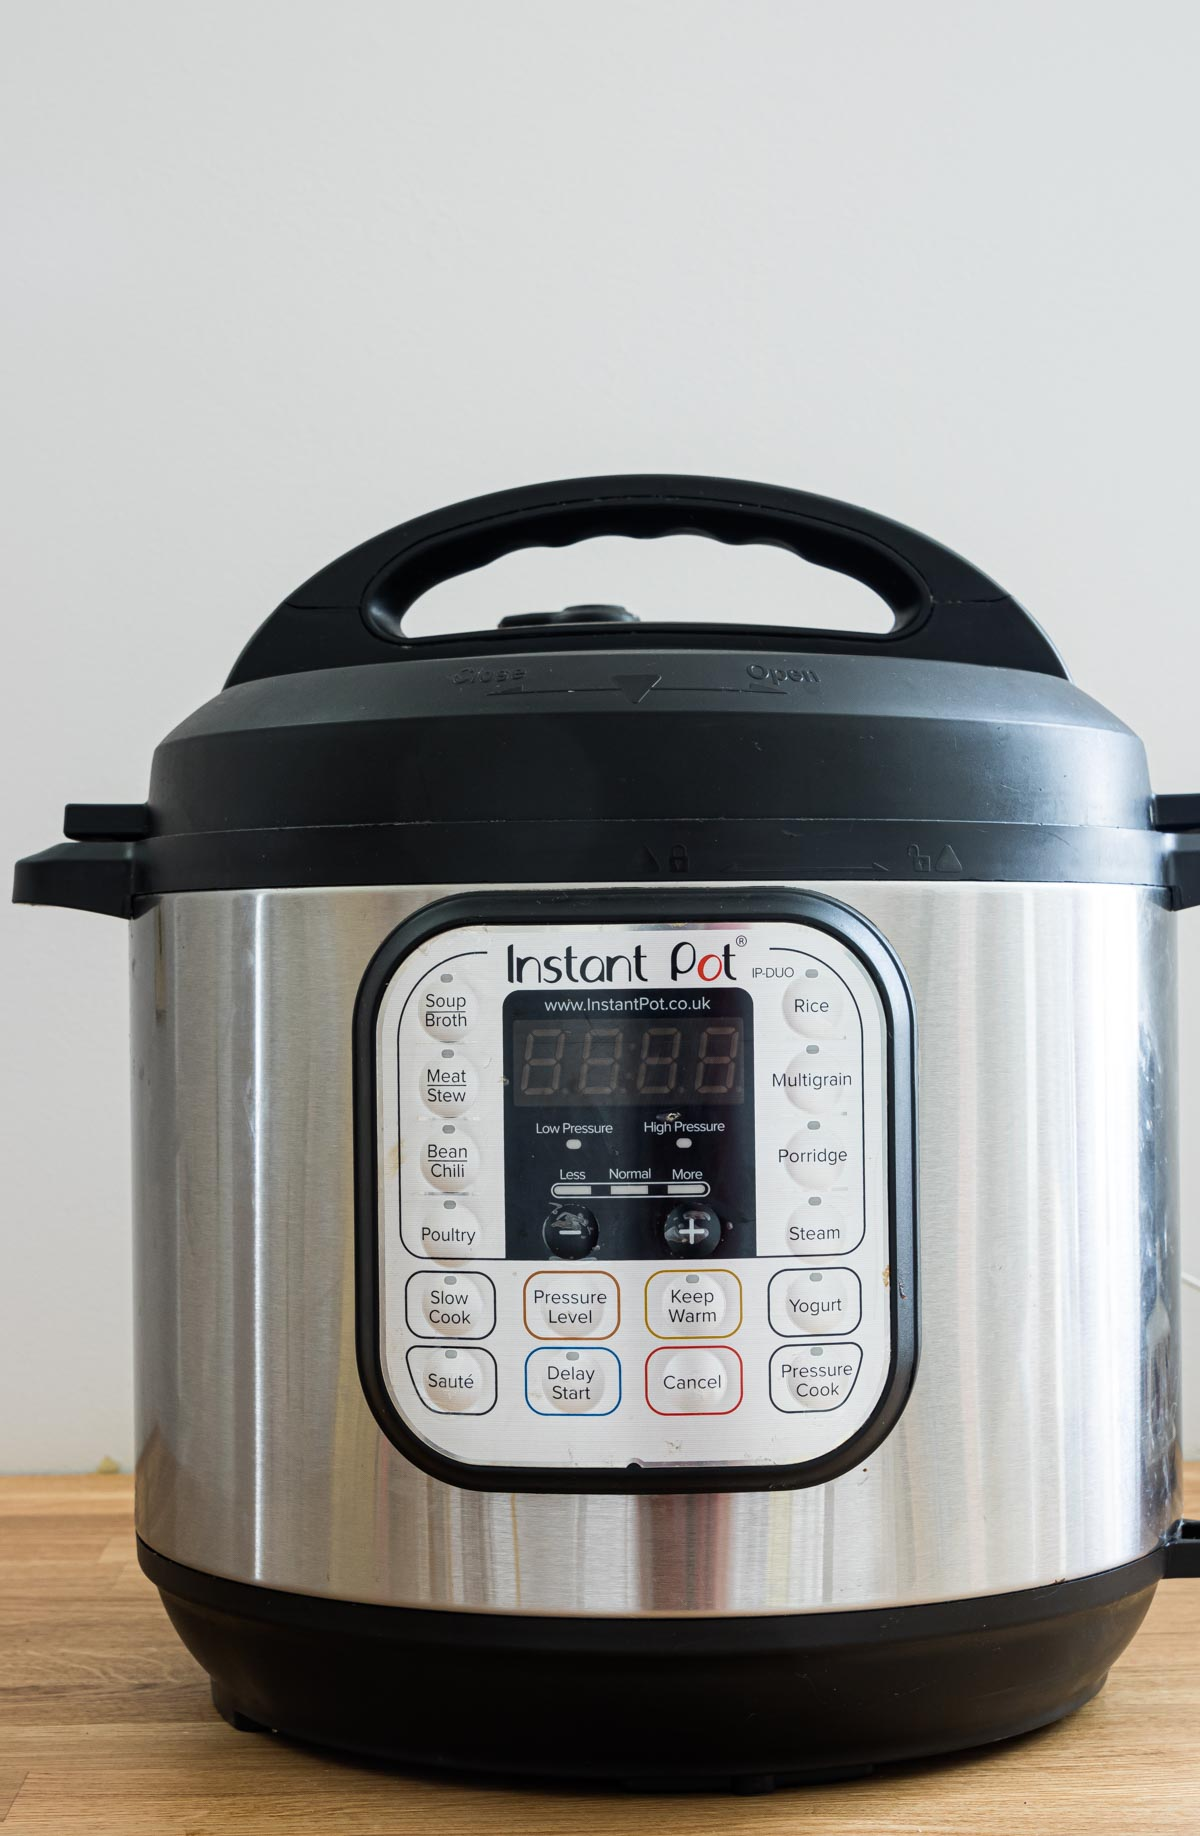 the front instant pot buttons and settings